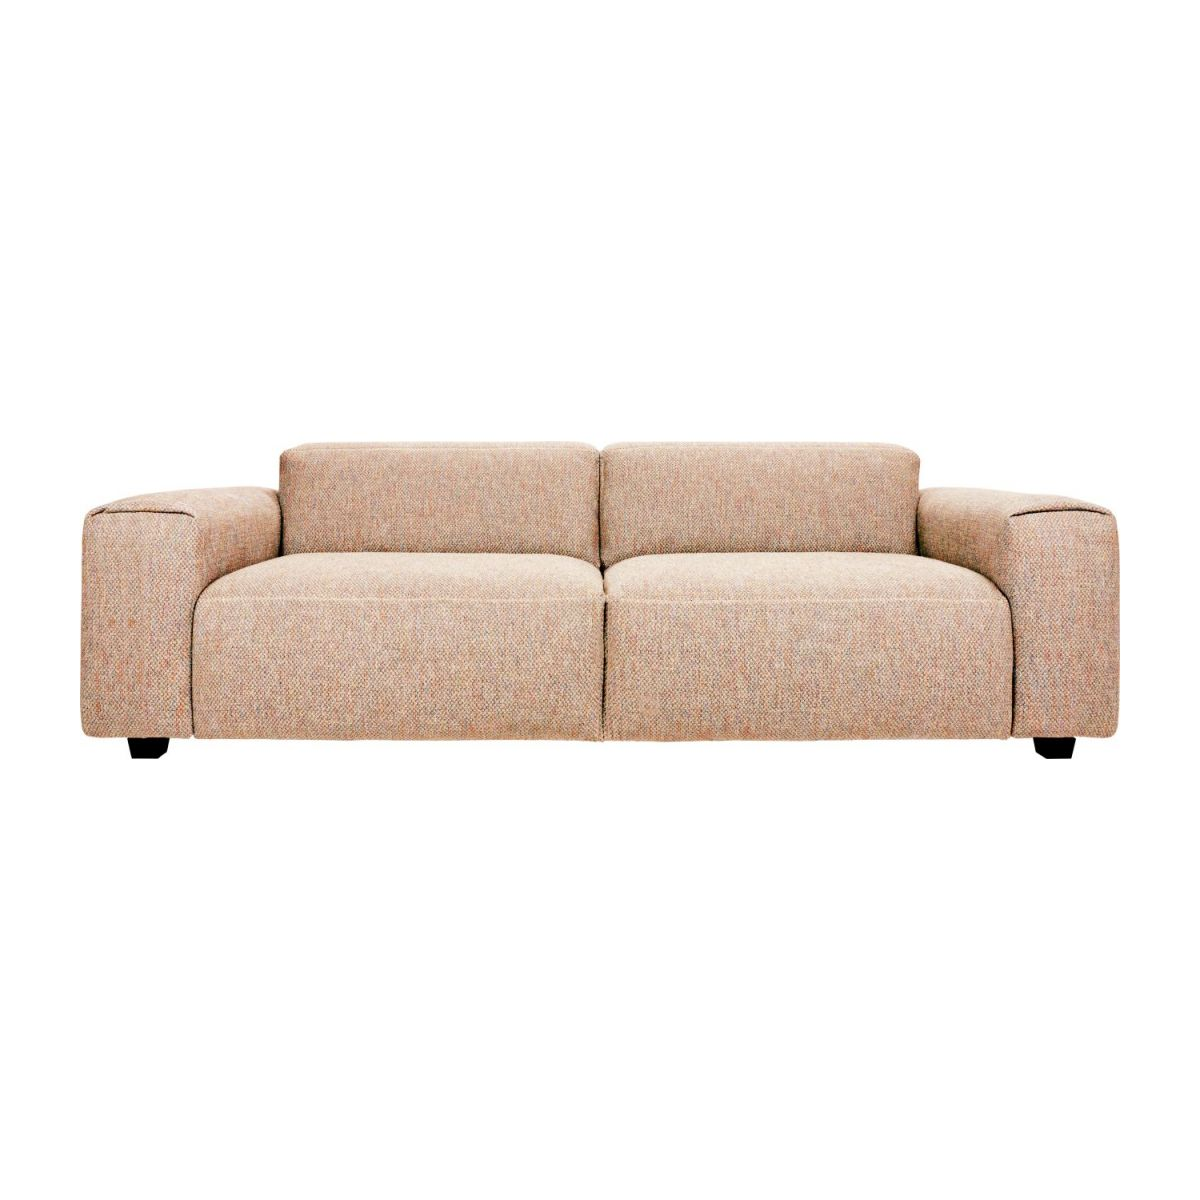 4-seater sofa in Bellagio fabric, passion orange n°3